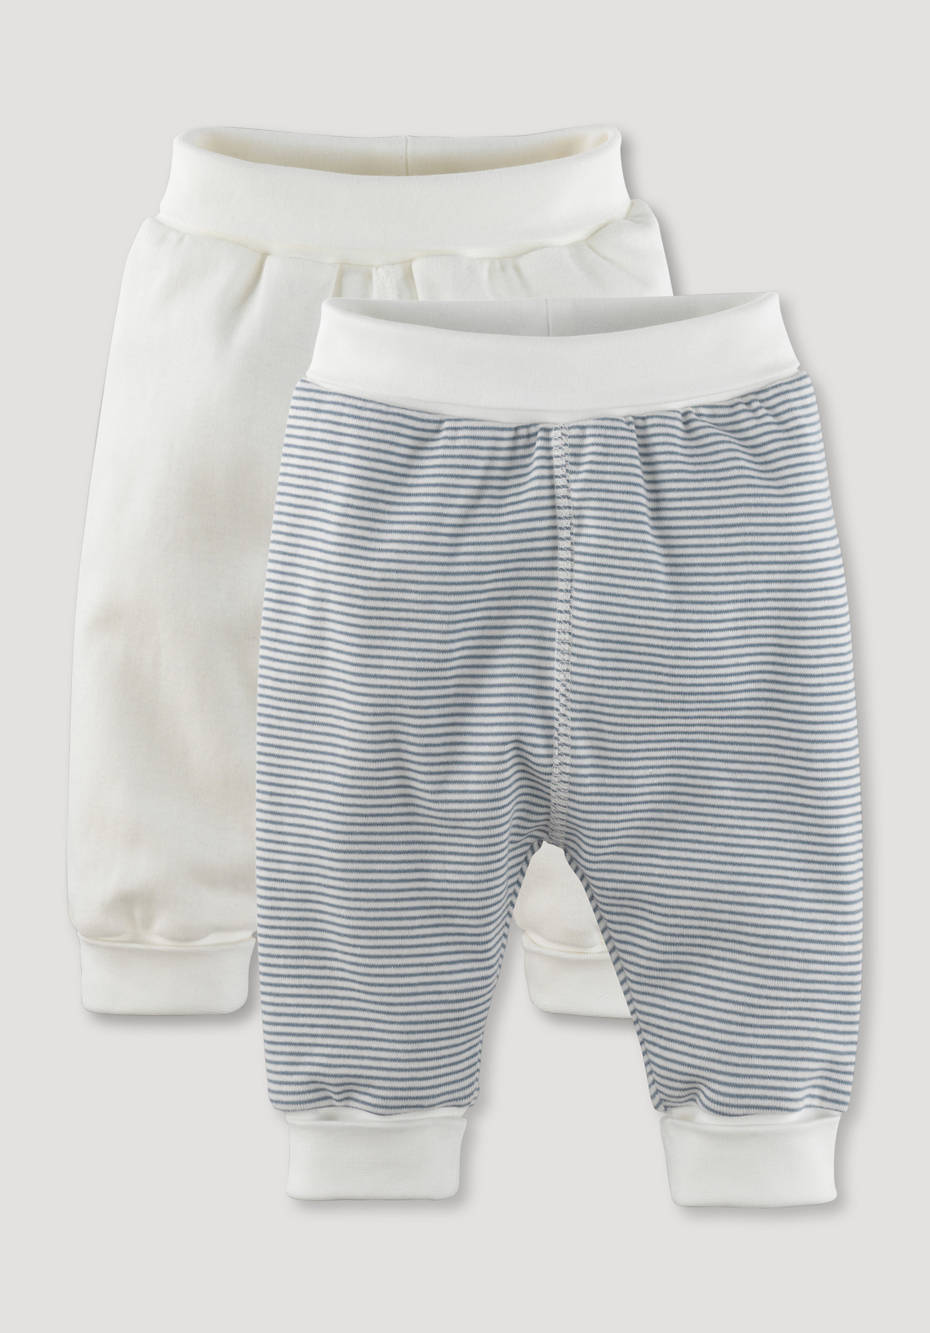 Set of 2 pants made of pure organic cotton